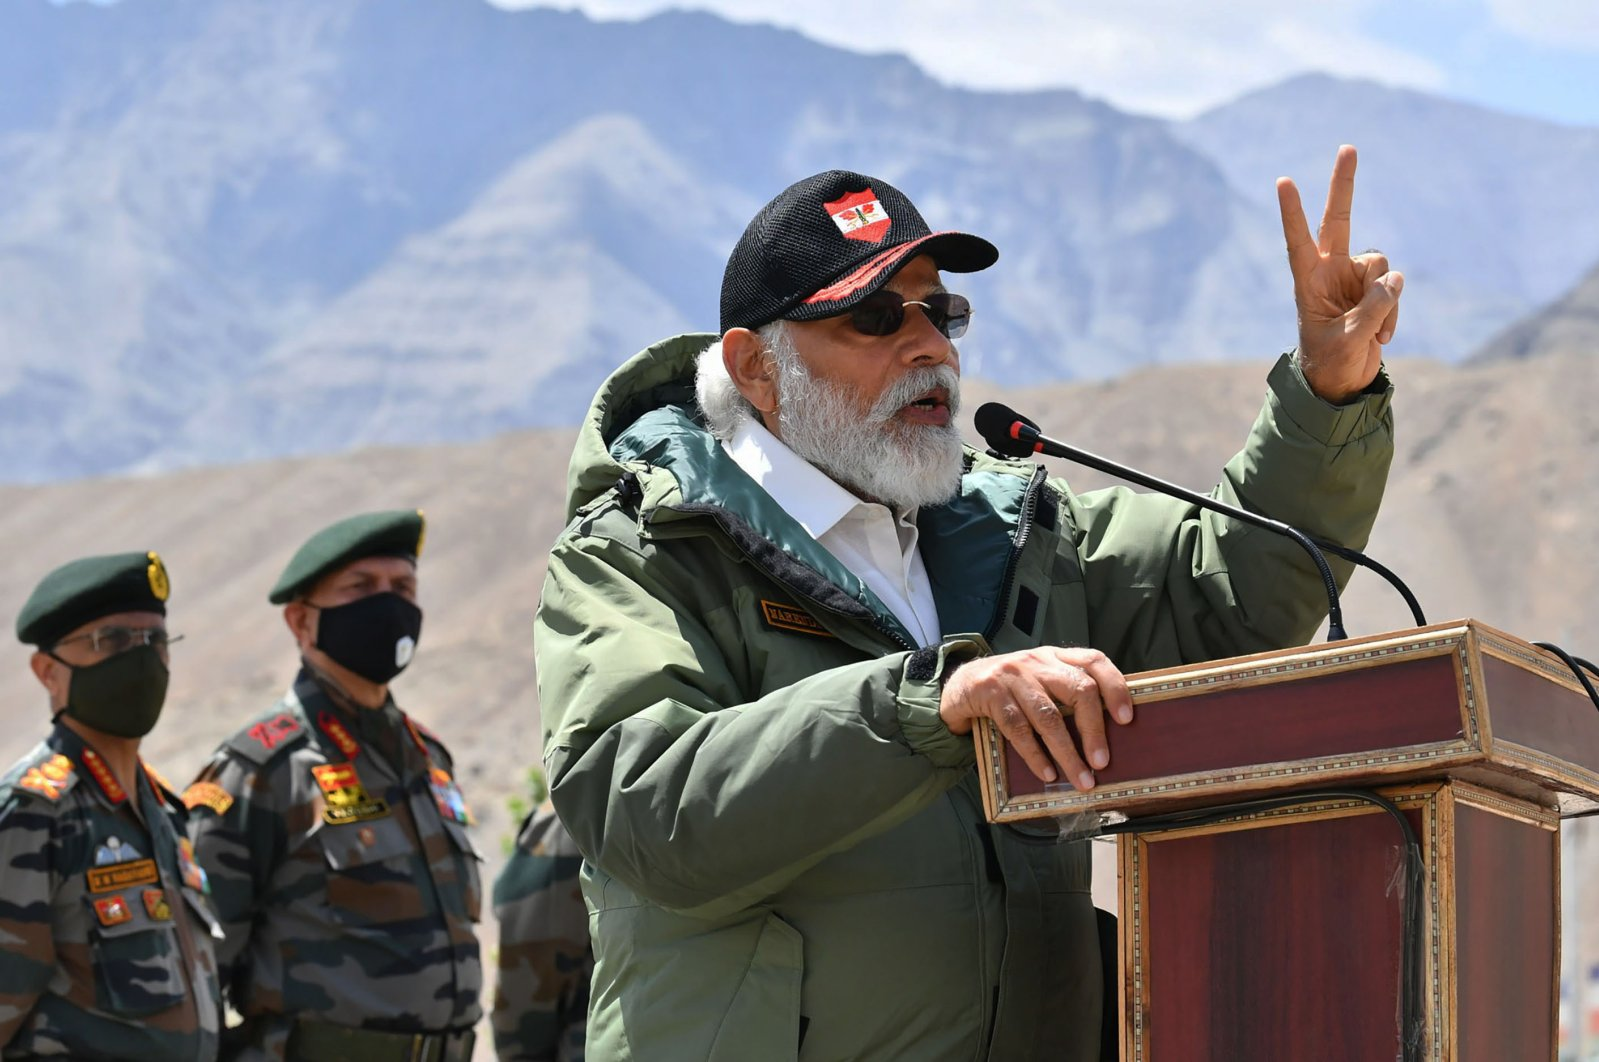 In this handout photo provided by the Press Information Bureau, Indian Prime Minister Narendra Modi adresses soldiers during a visit to Nimu, Ladakh area, India, Friday, July 3, 2020. (AP Photo)